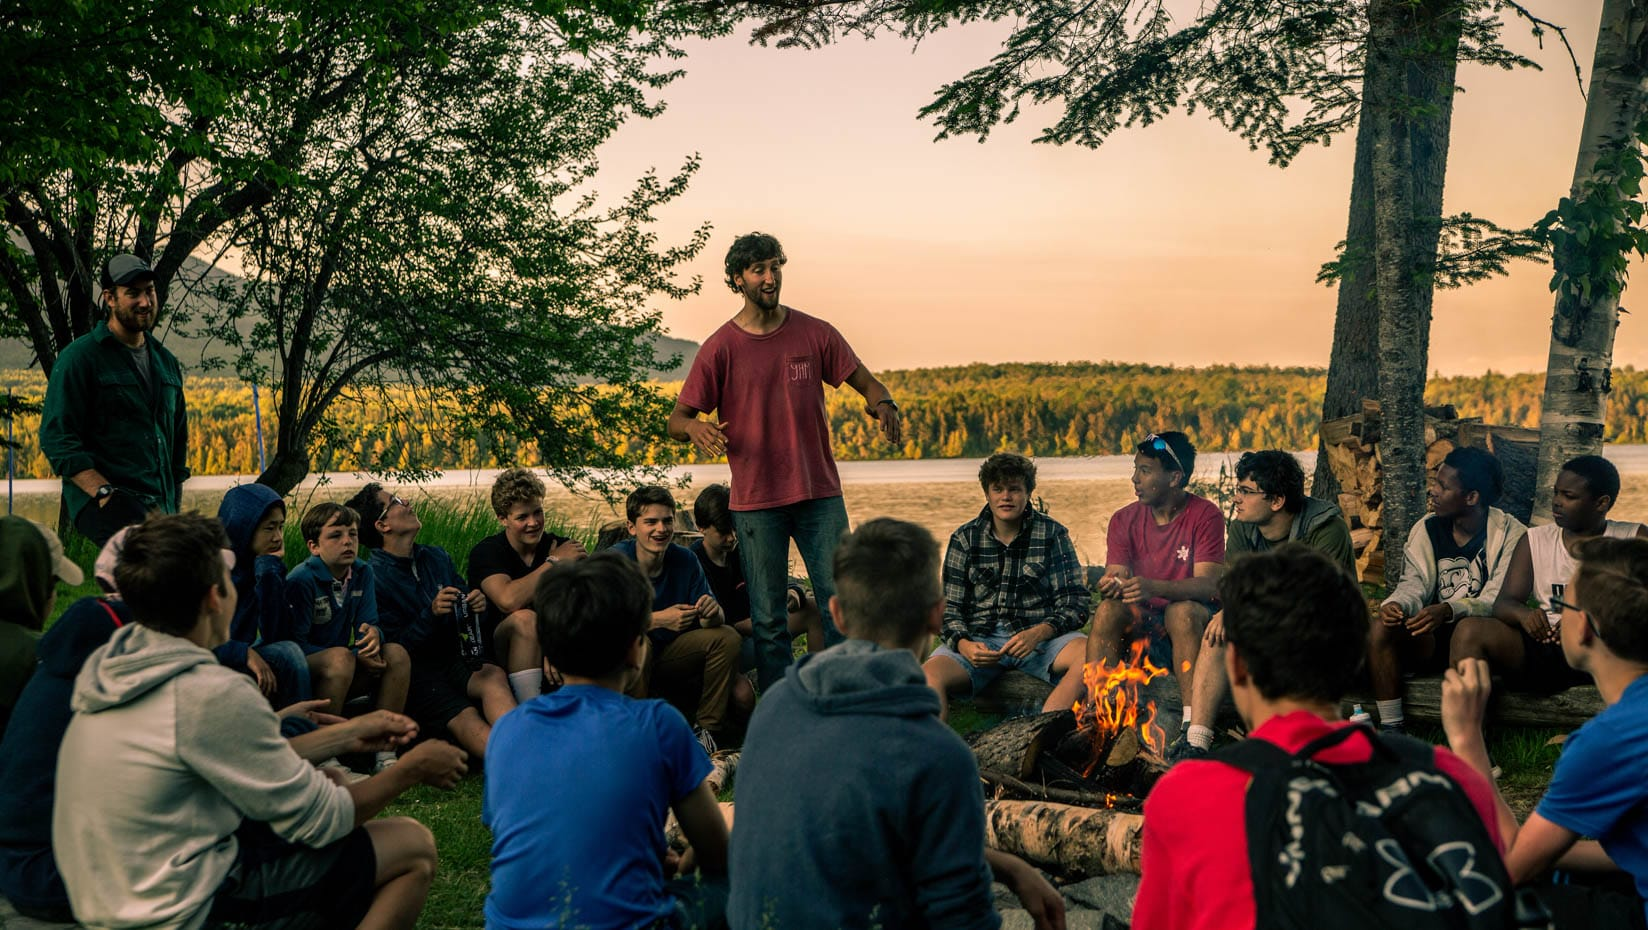 Staff leading a campfire circle at sunset